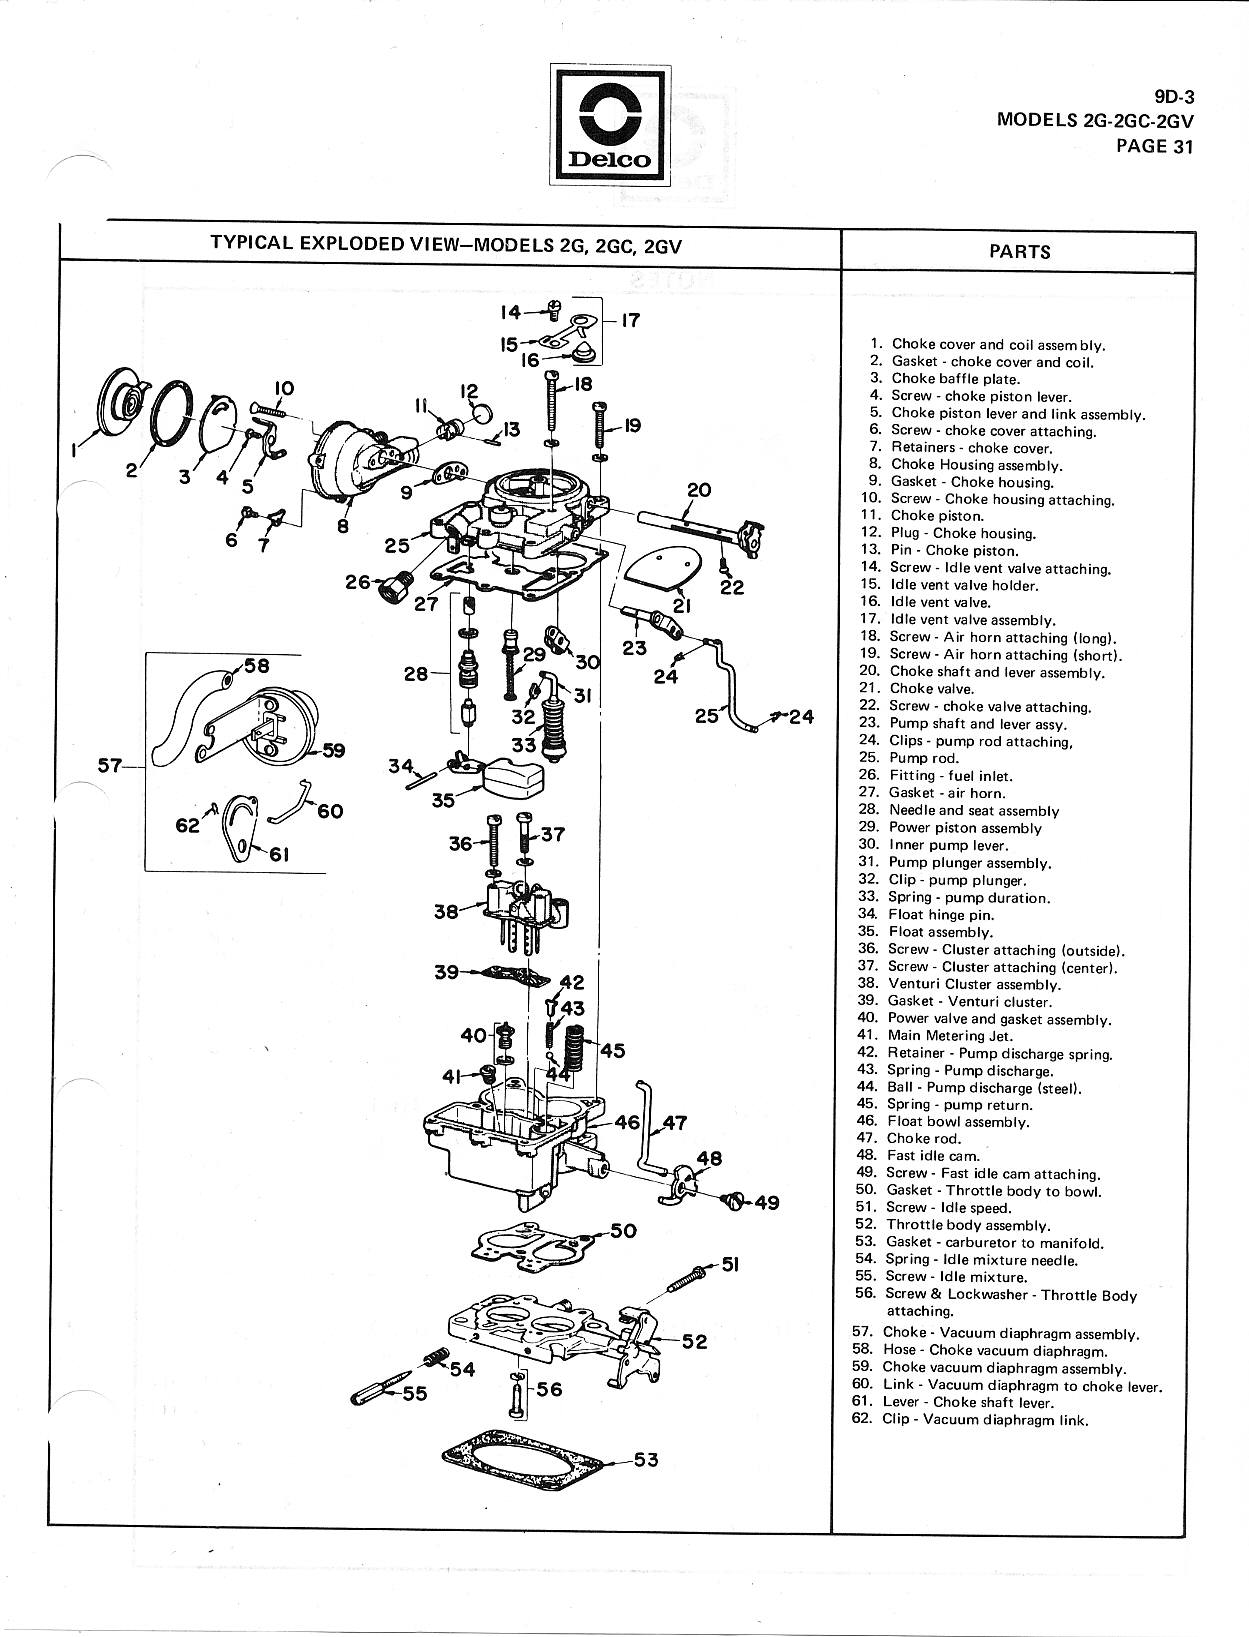 Rochester 2 Jet Carb Manual The Old Car Project Vauum Engine Choke Valve Diagram Contd Vacuum Break Throttle And Idle Adjustments A C Cec Adjustment